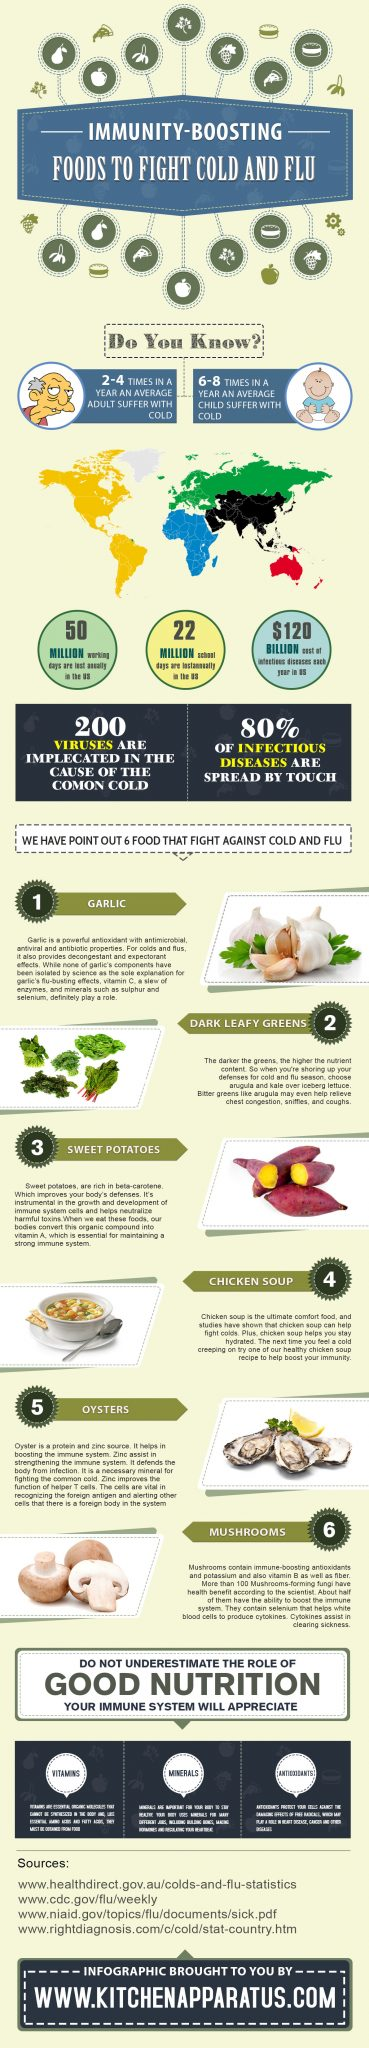 Foods to Fight Cold and Flu